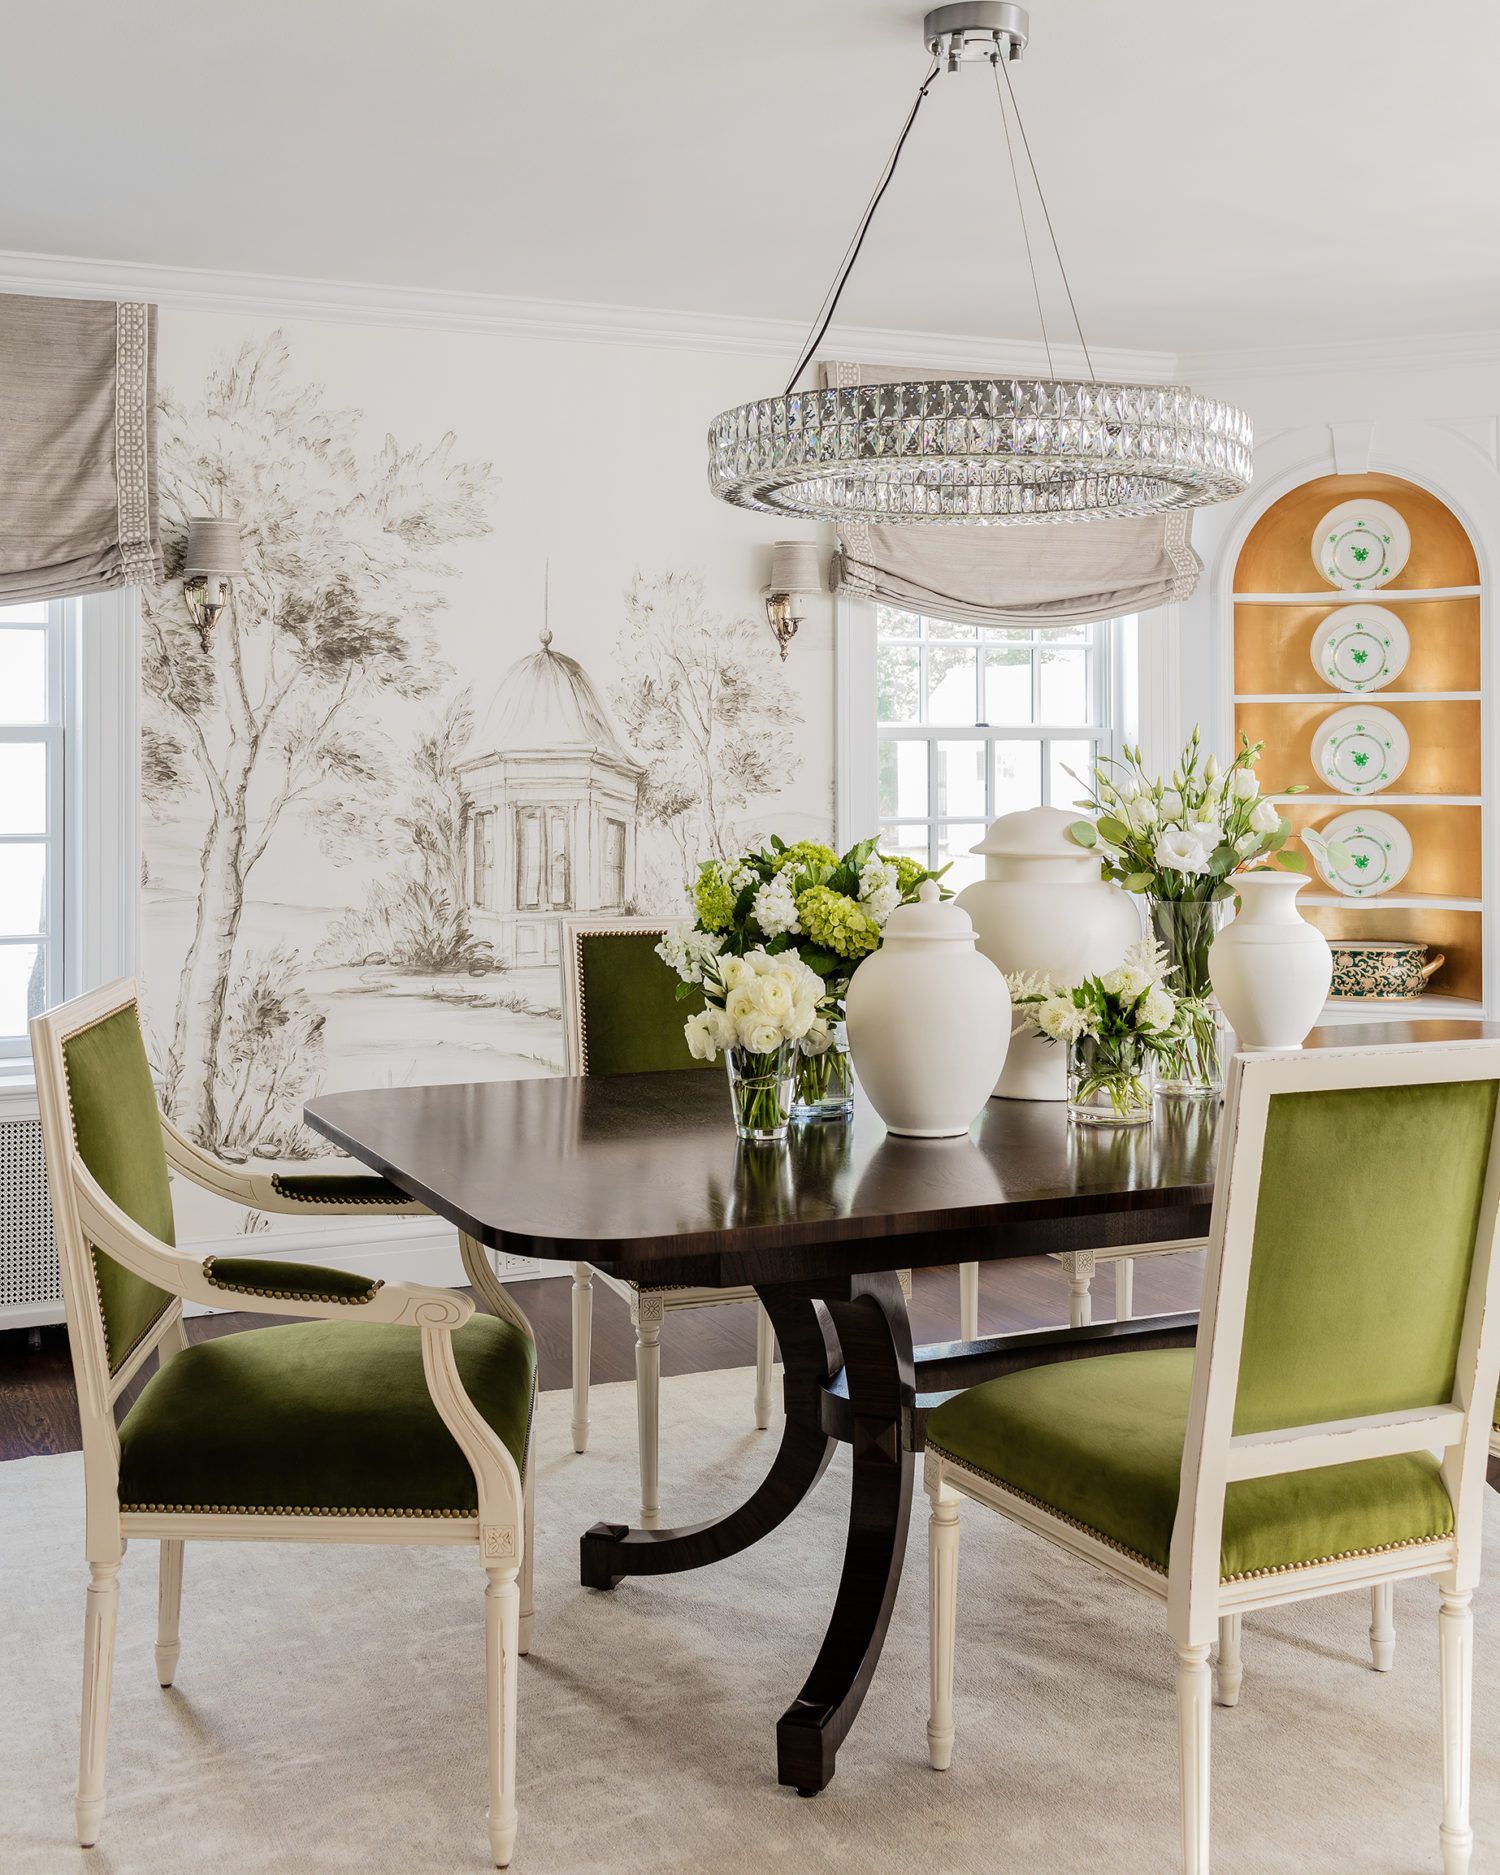 Elegant Tableware For Dining Rooms With Style: Sneak Peek: A Favorite Project From The Book